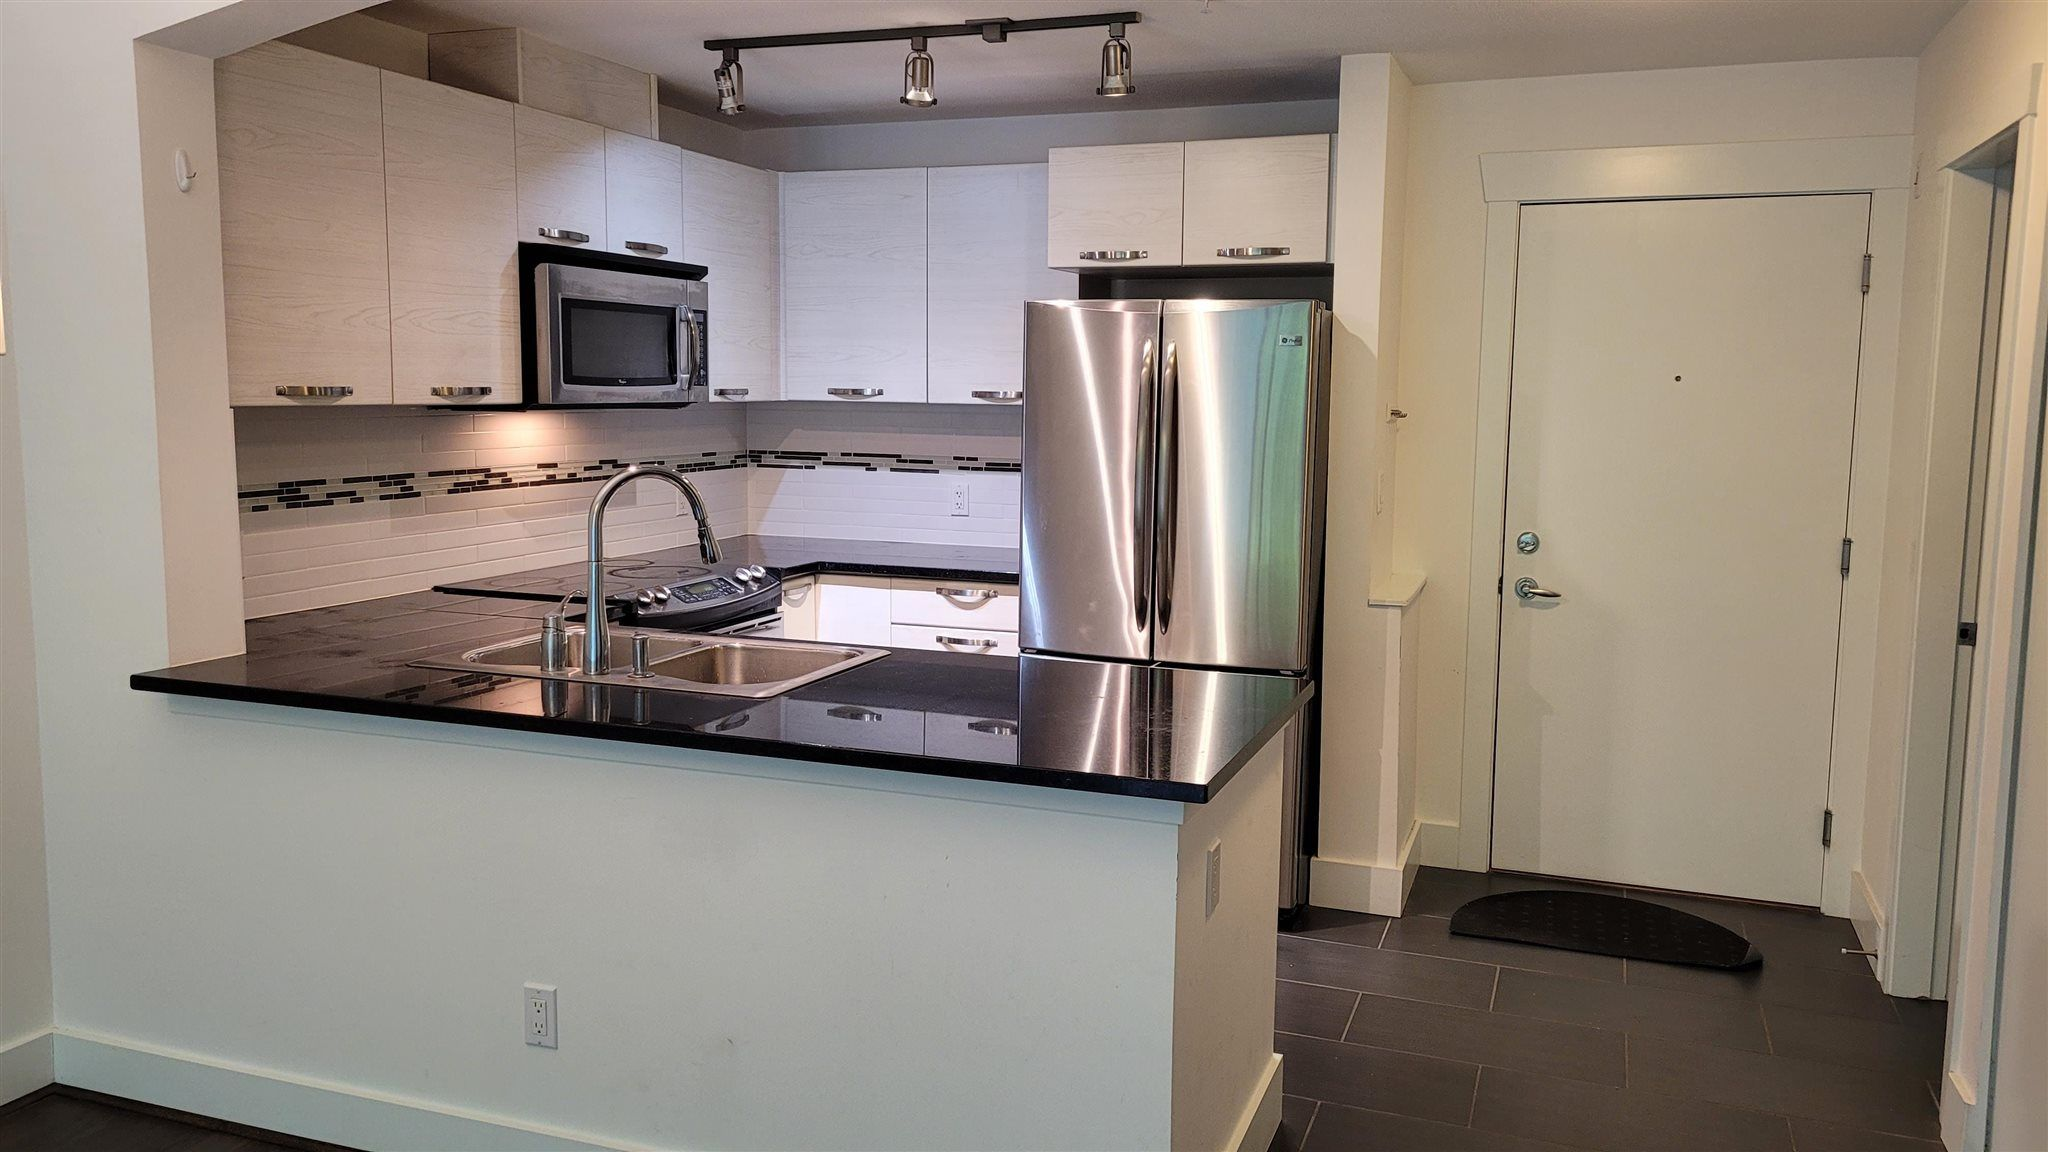 """Main Photo: 211 7478 BYRNEPARK Walk in Burnaby: South Slope Condo for sale in """"GREEN-WINTER"""" (Burnaby South)  : MLS®# R2601787"""